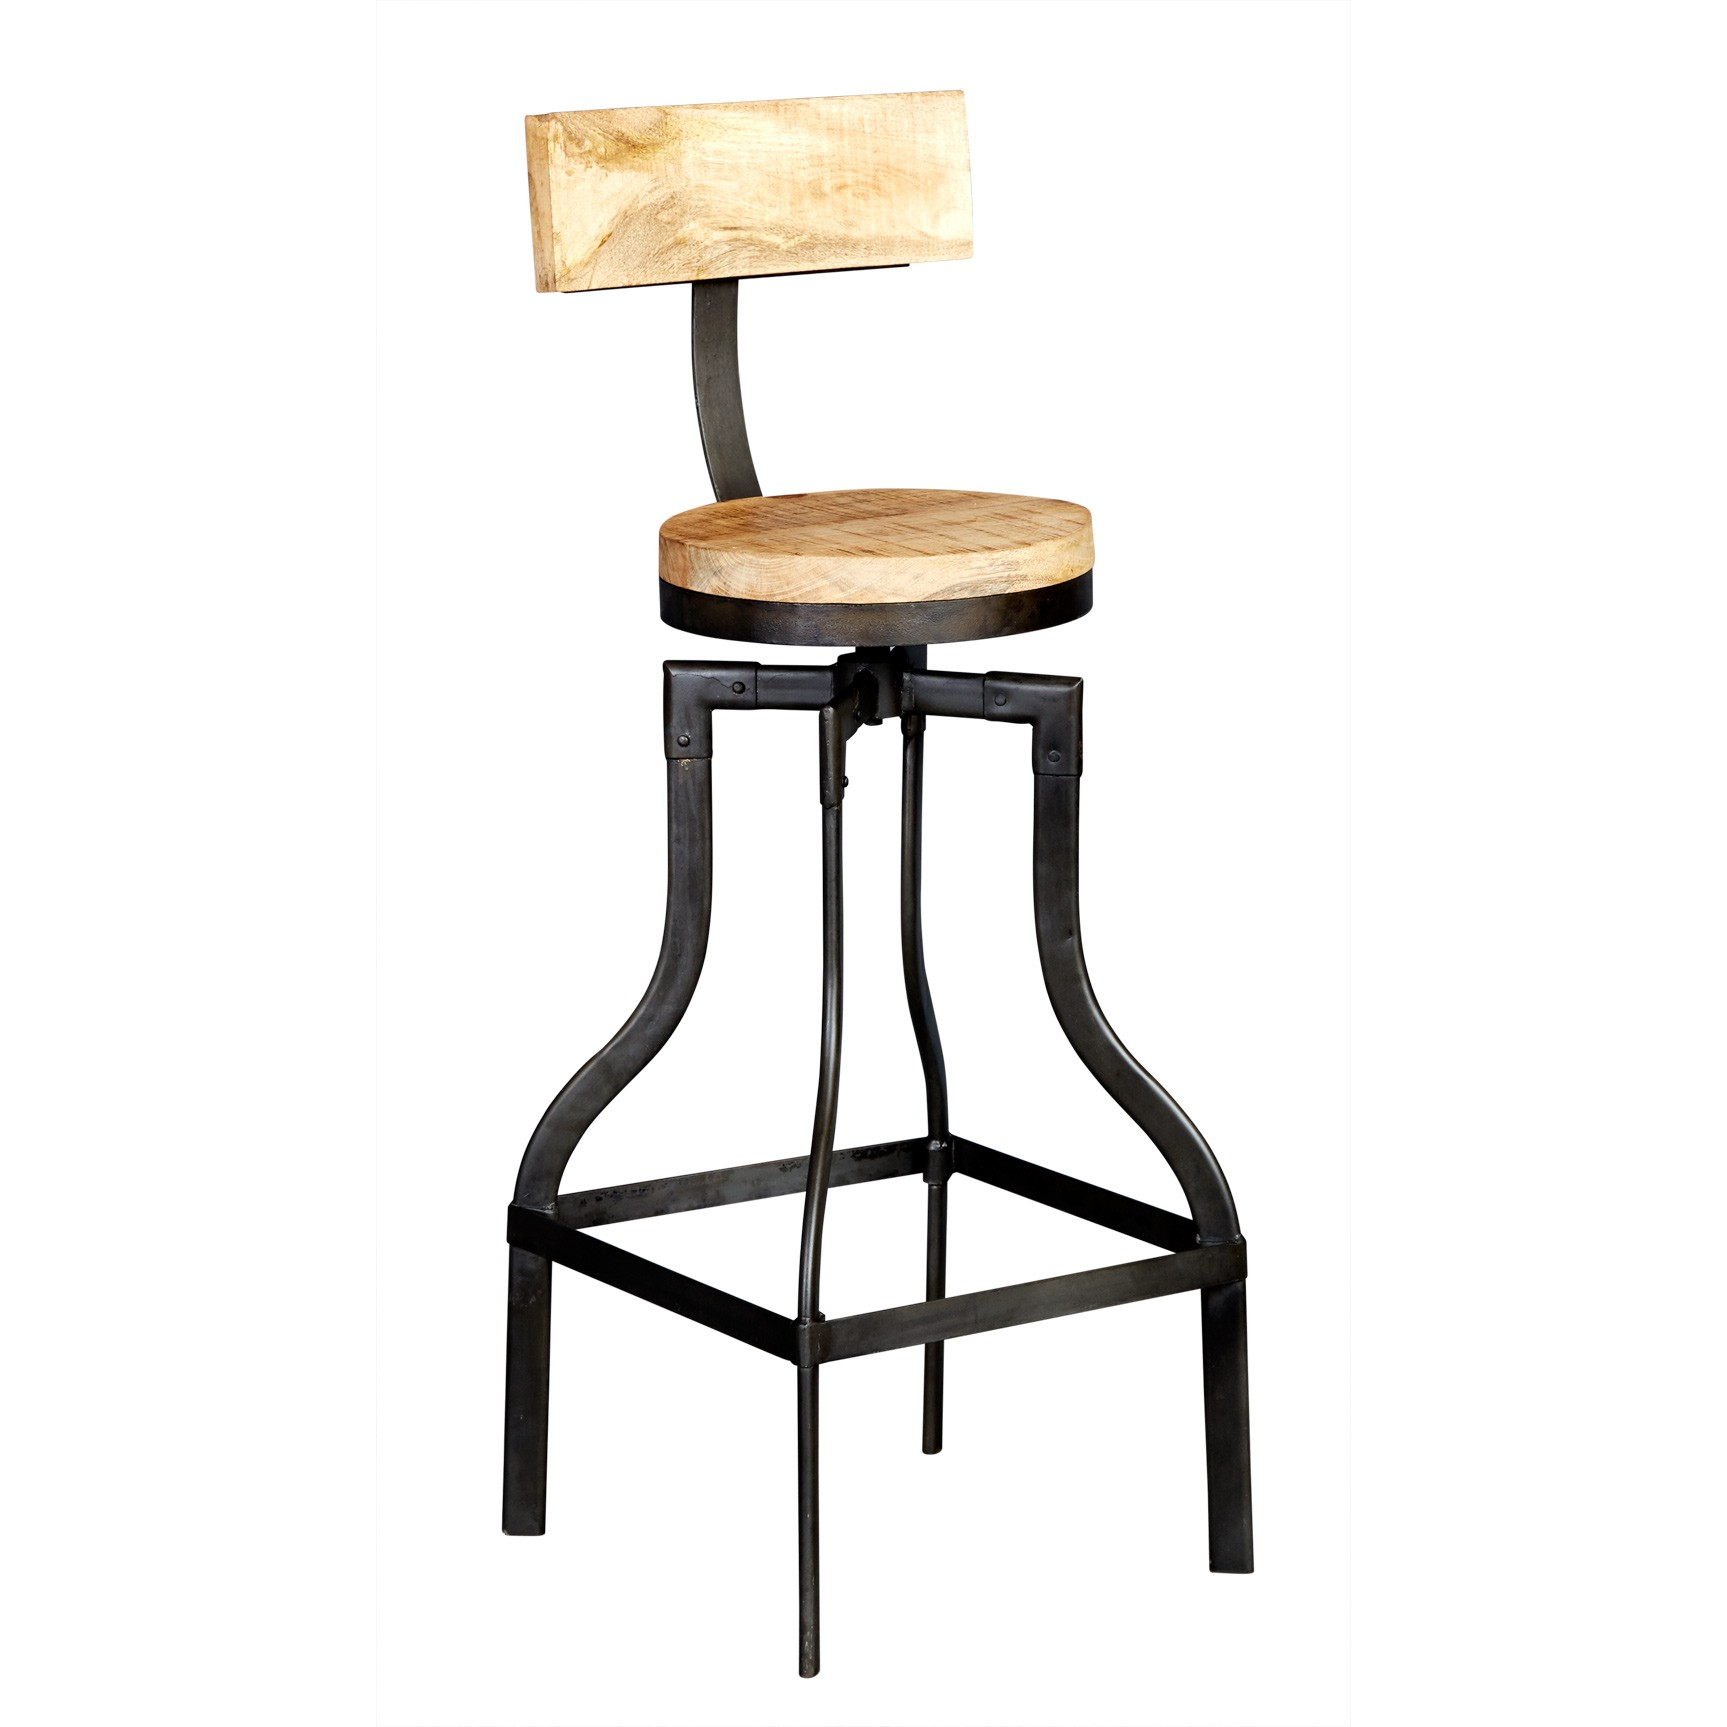 full pacific wonderful and wood leather modern wooden breakfast shop barstool of in price stool chairs metal backs impressive marvelous store large adjustable height com bar with size seating cheap amazon reclaimed magnificent back stools copper traditional best industrial swivel